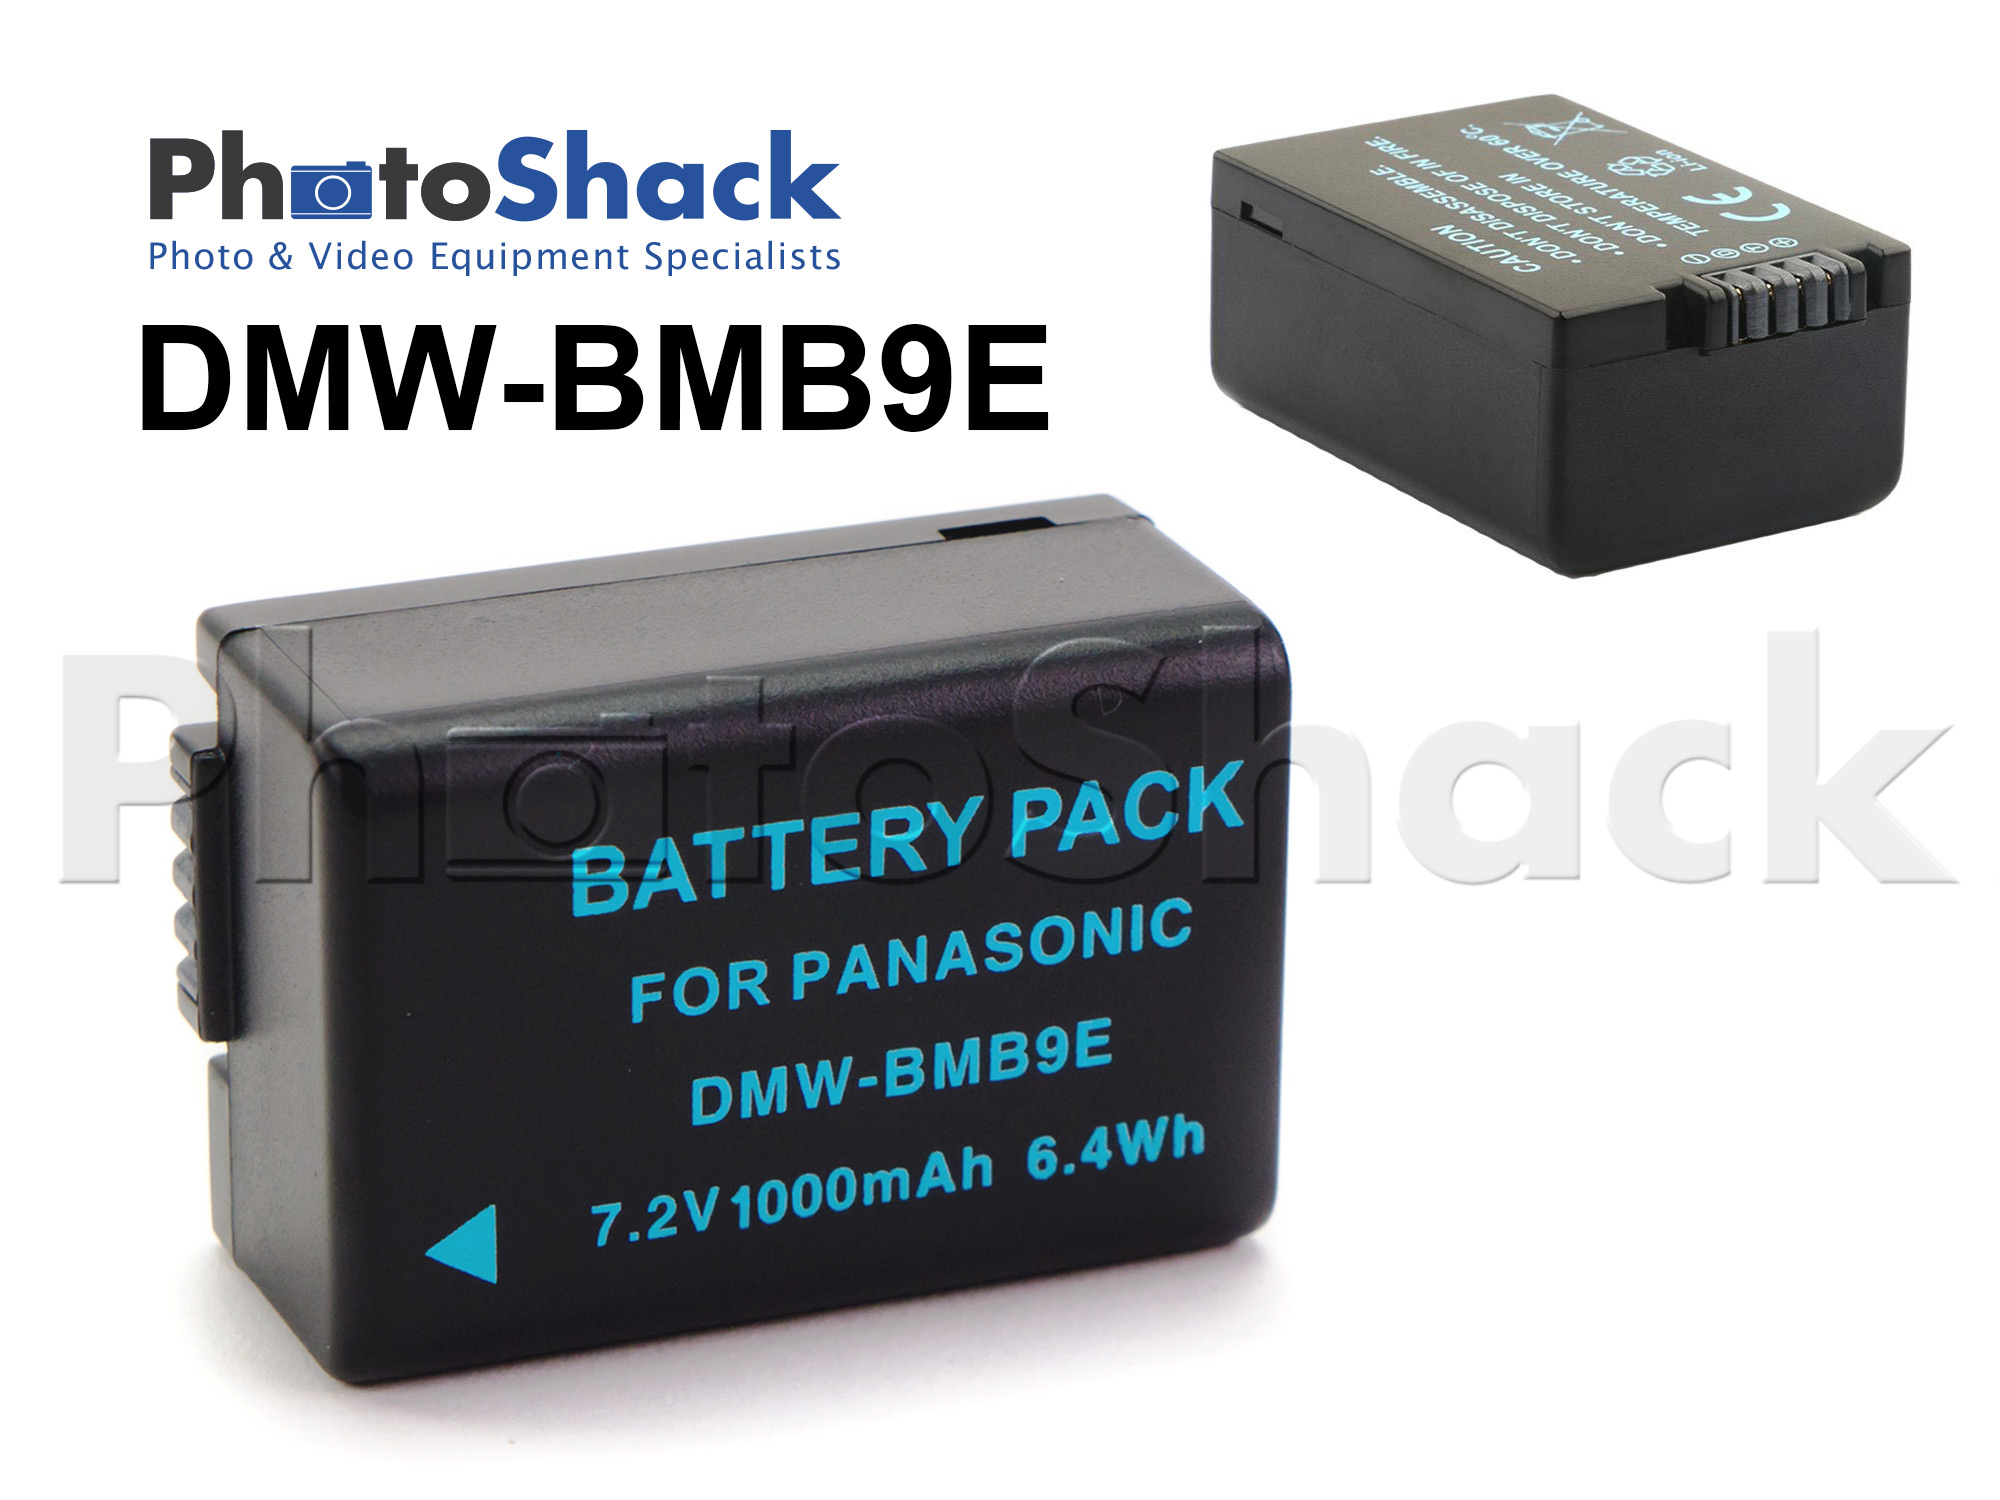 DMW-BMB9E Camera Battery for Panasonic